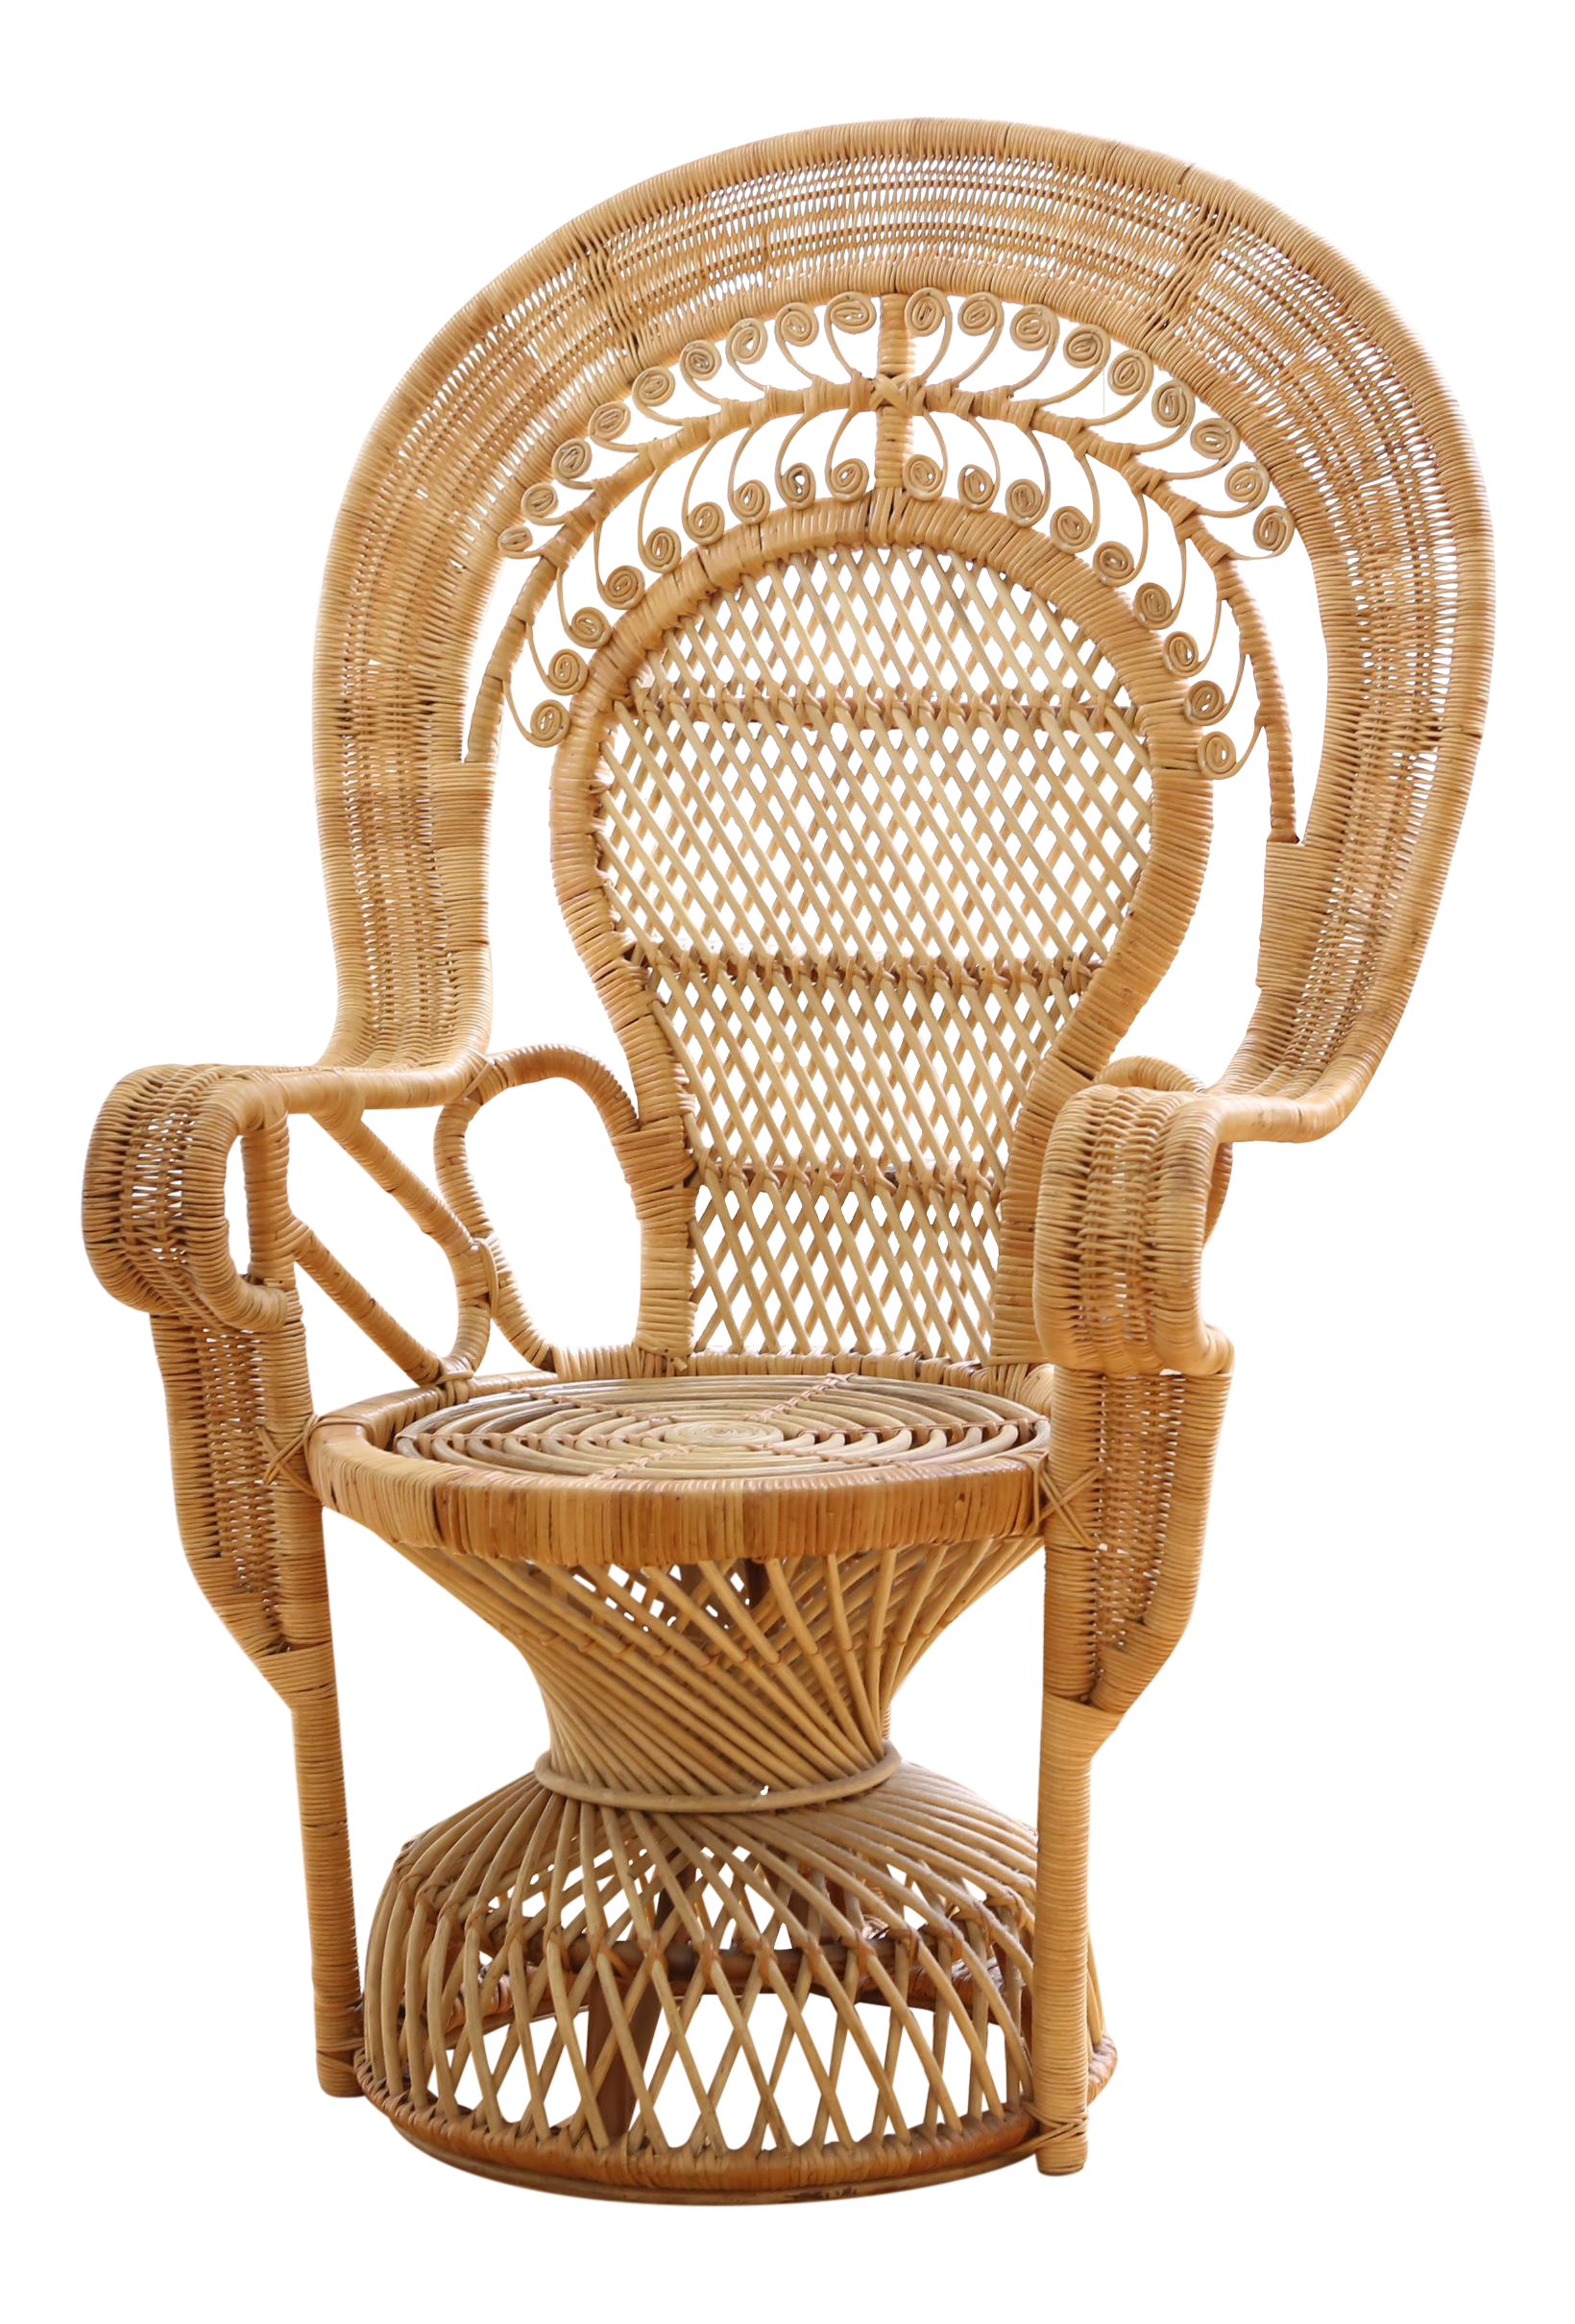 Vintage Rattan And Wicker Peacock Chair Chairish